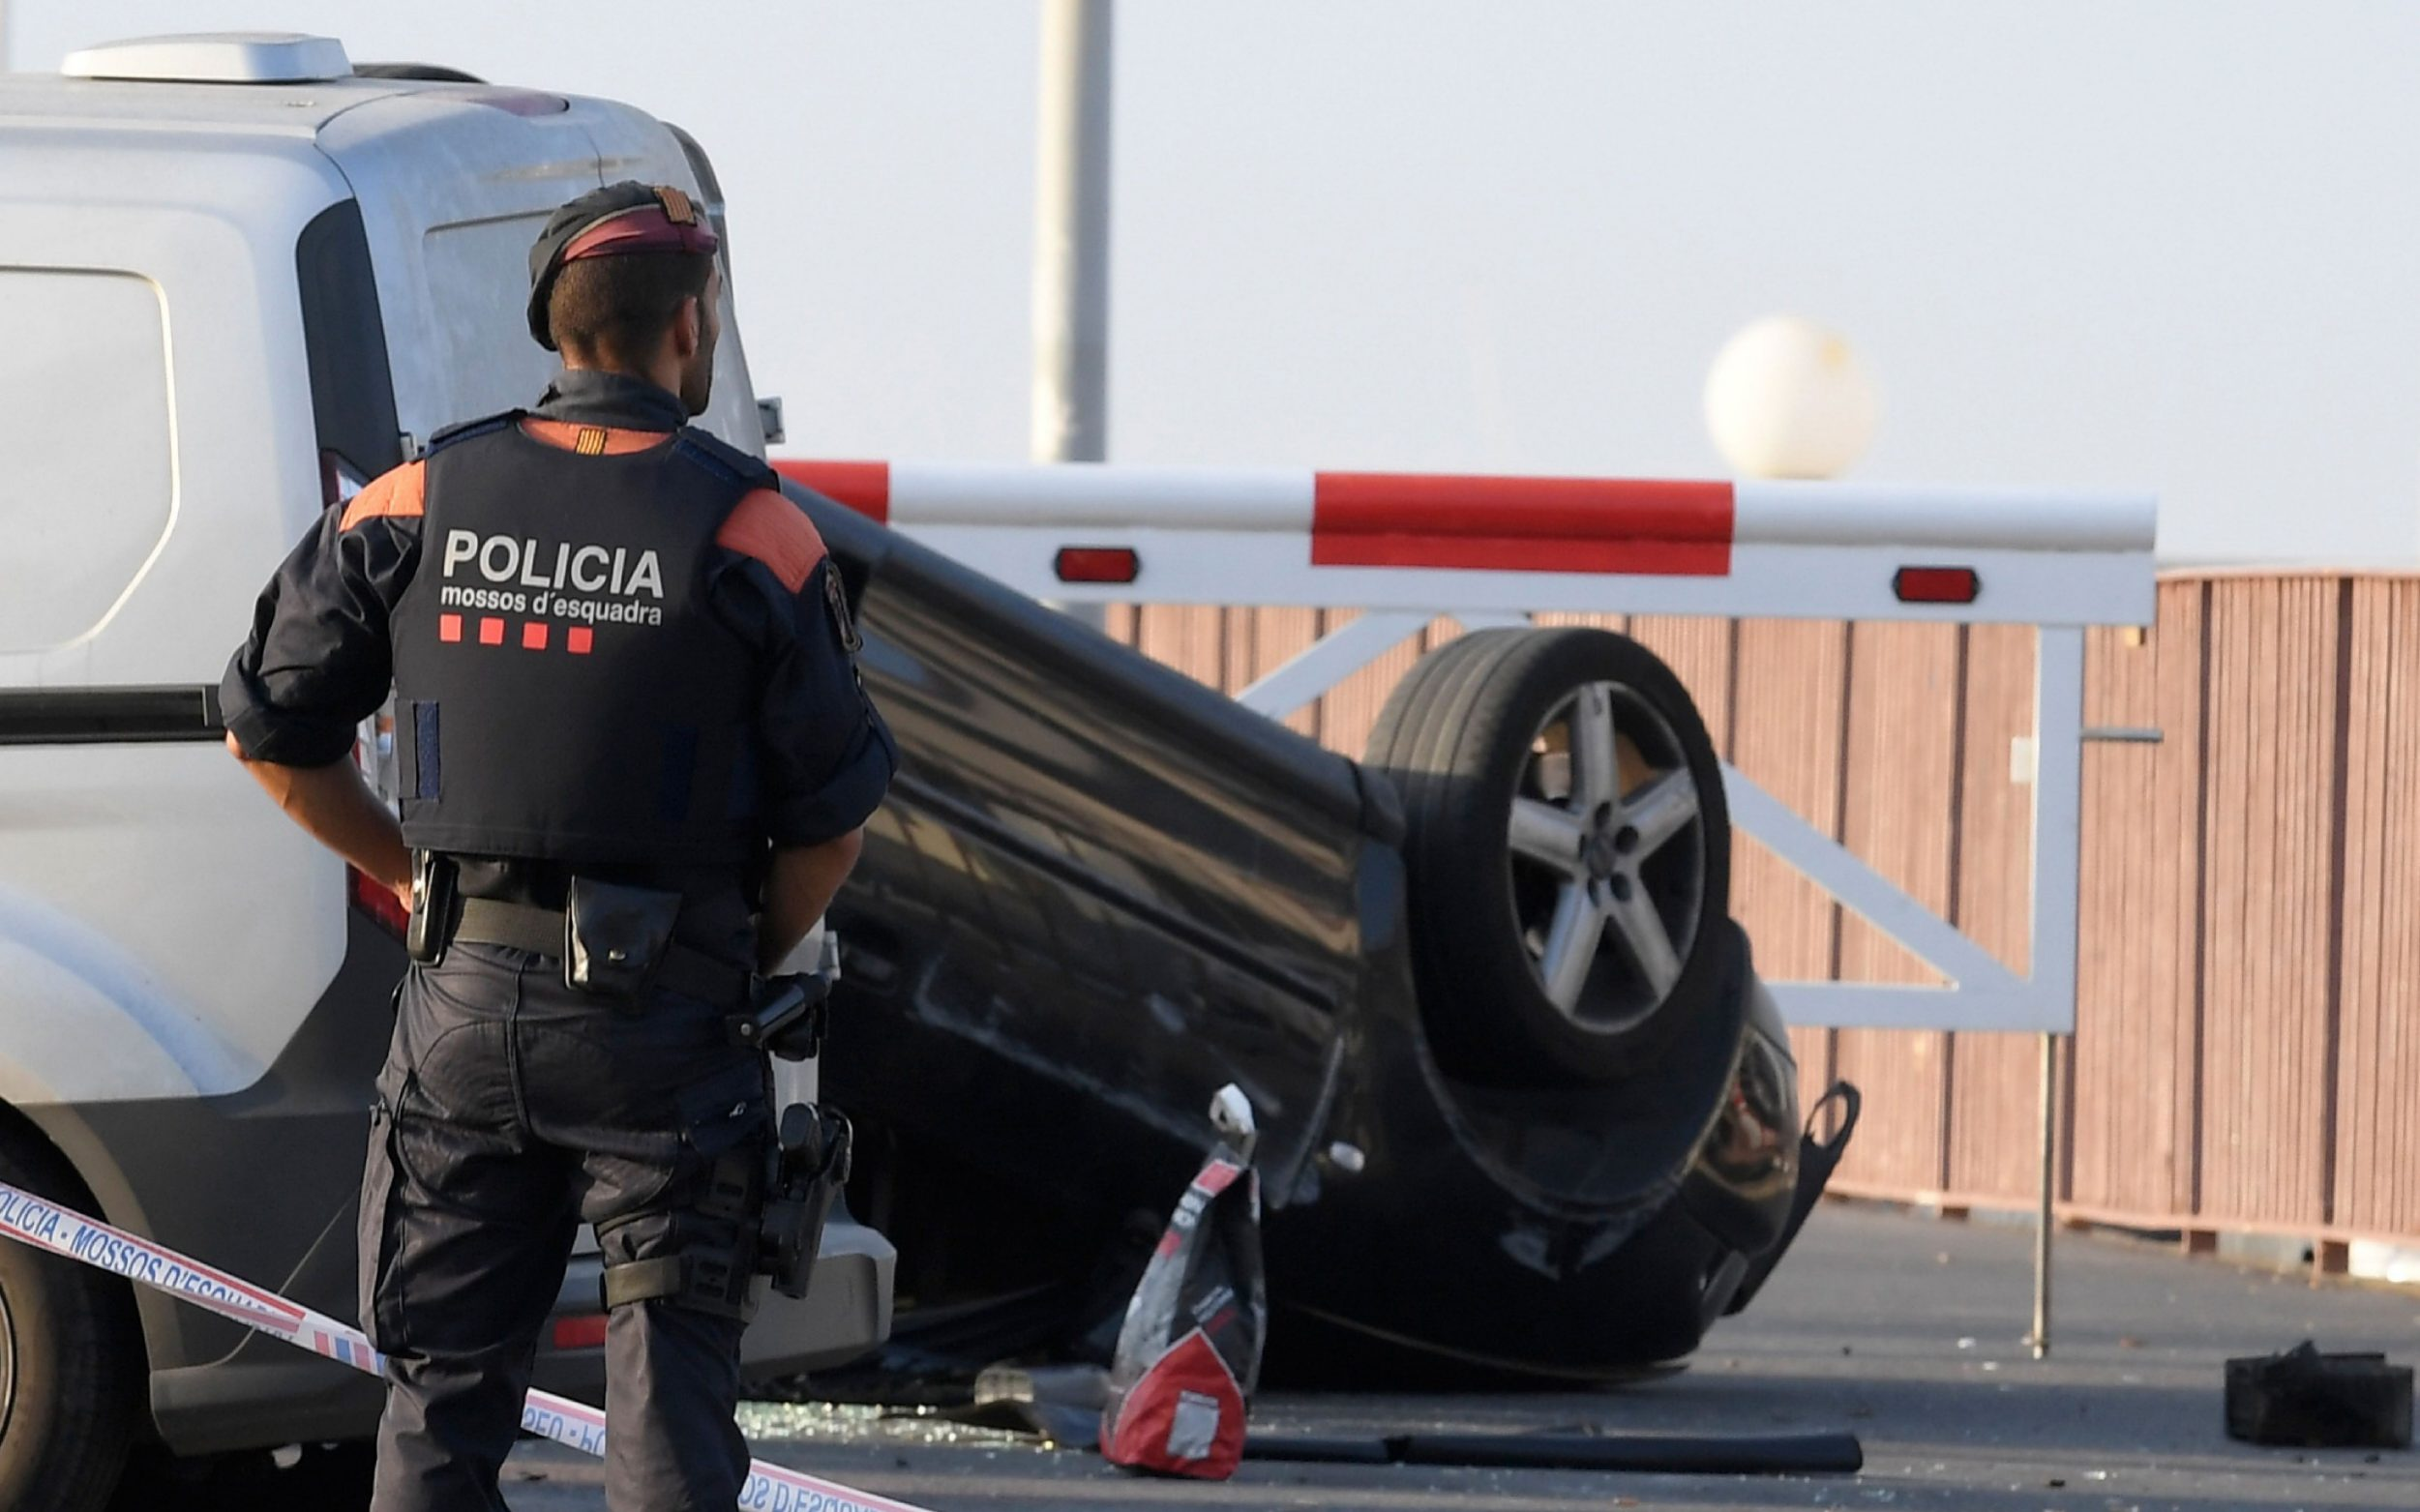 A policeman stands by a car involved in a terrorist attack in Cambrils, a city 120 kilometres south of Barcelona